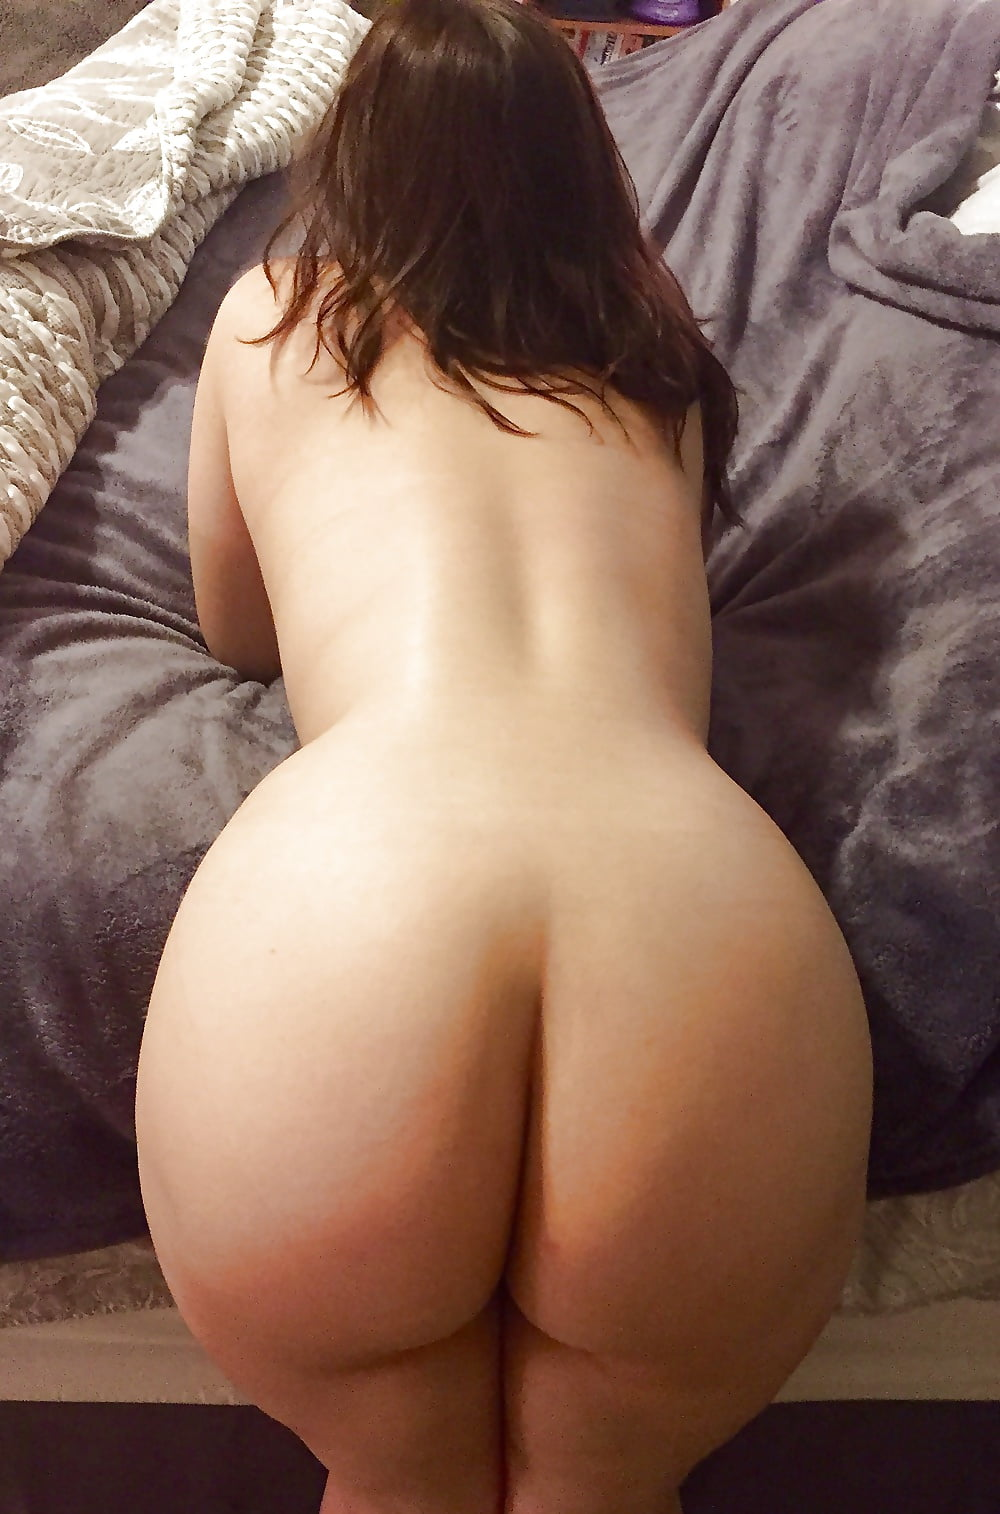 Fucking Pictures Saggy tits tinder nubiles hairy